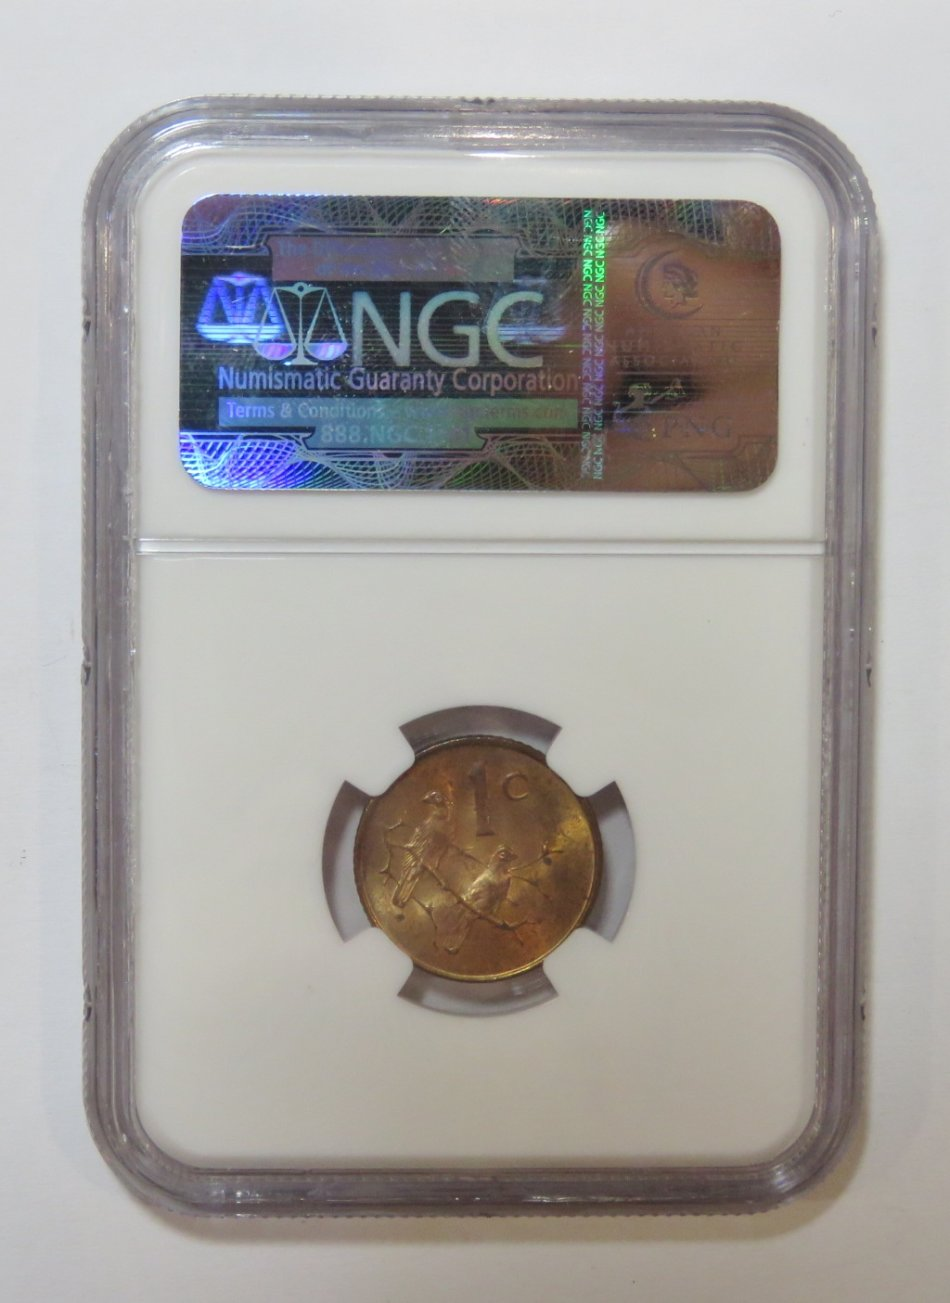 1965 English cent graded MS 63 RB by NGC - only 1180 minted !  Have you got one?